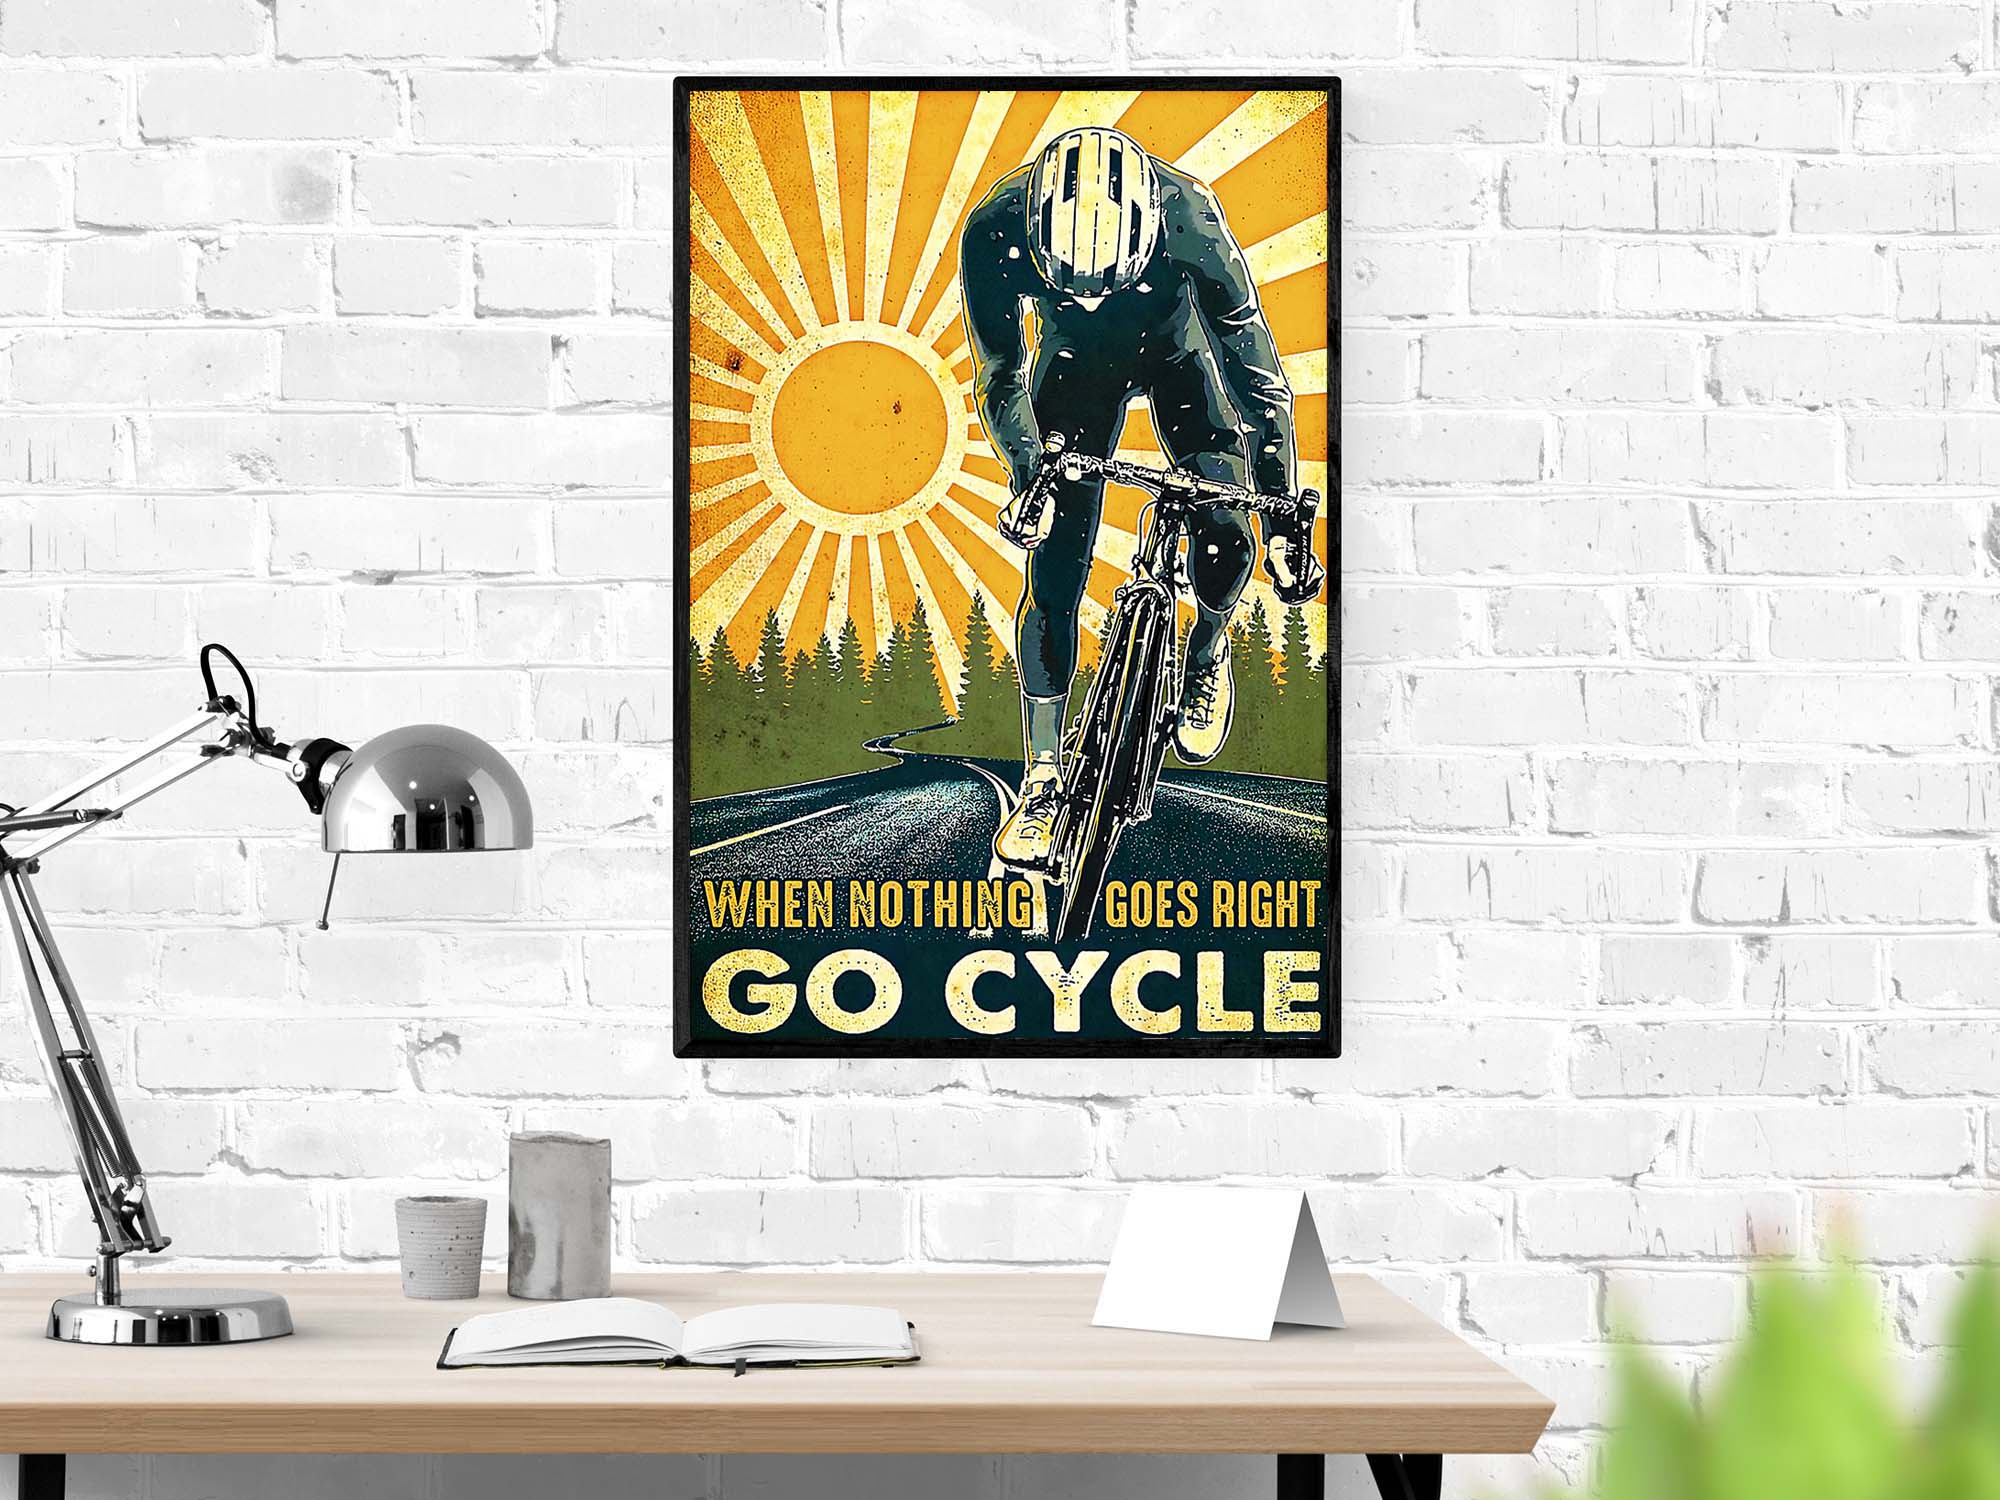 When nothing goes right go cycle poster 1